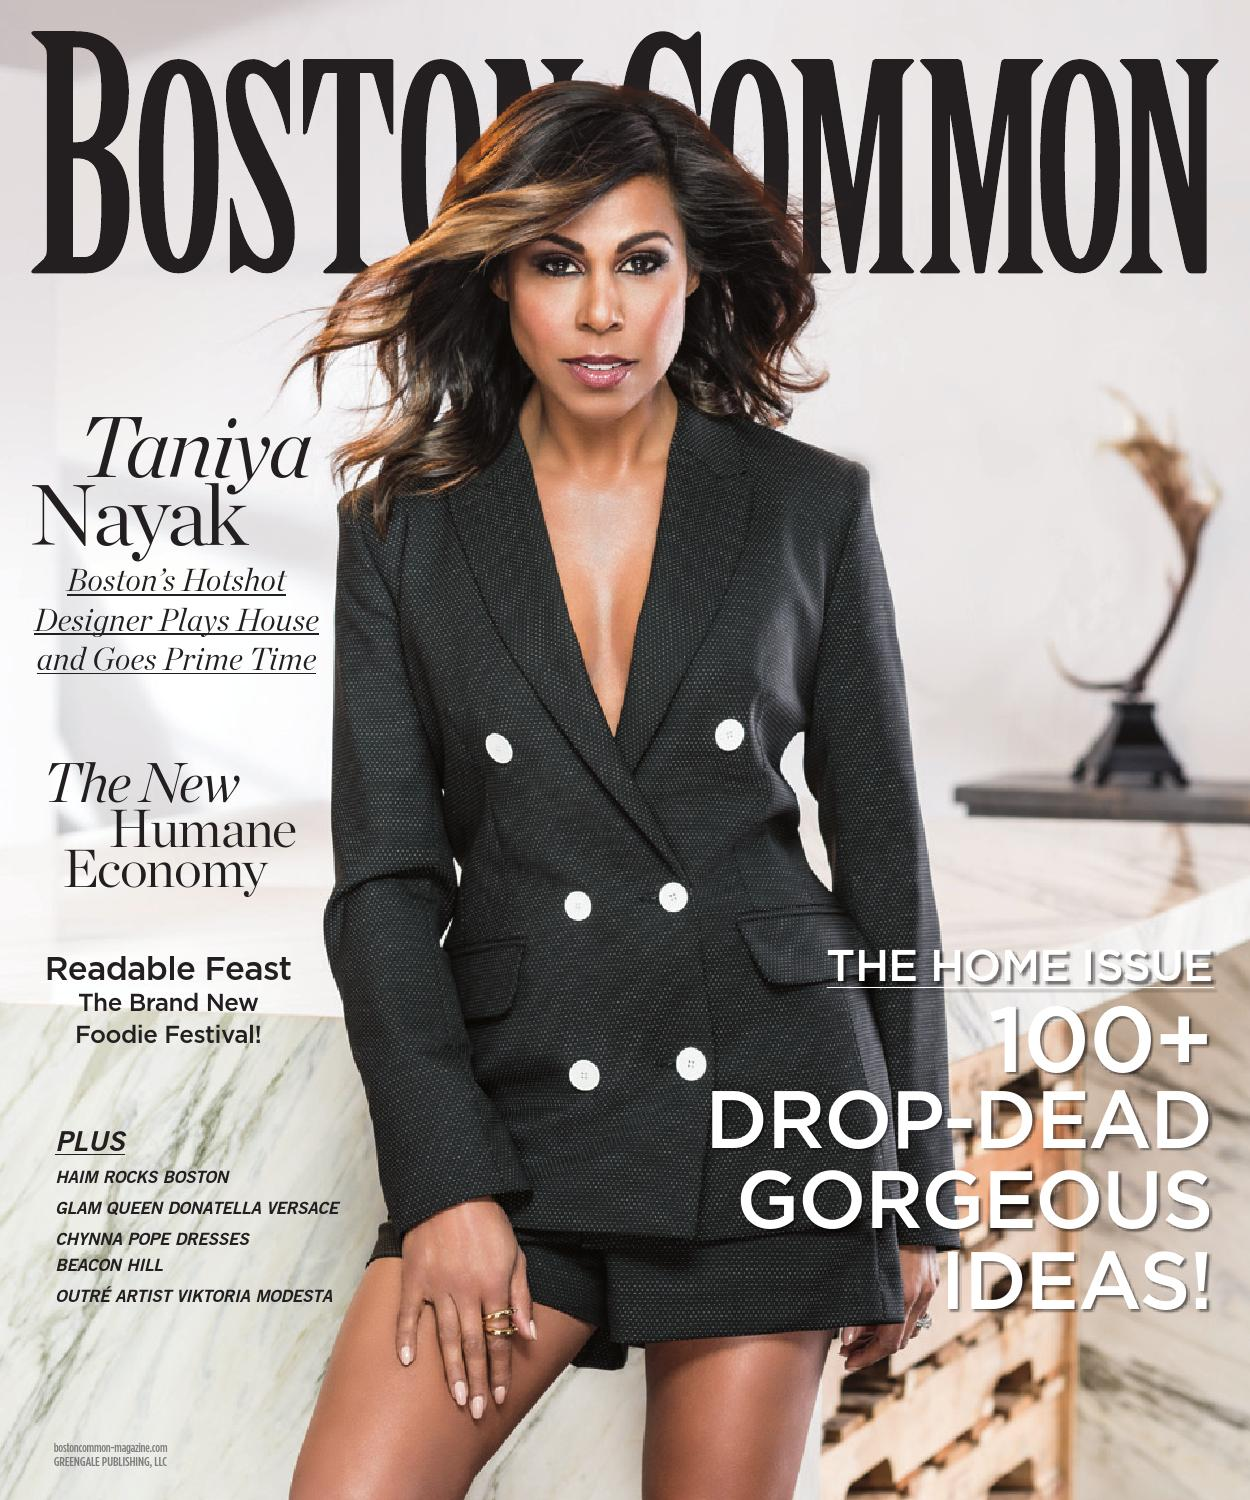 bcca6d174eb Boston Common - 2016 - Issue 2 - Late Spring - Taniya Nayak by MODERN  LUXURY - issuu